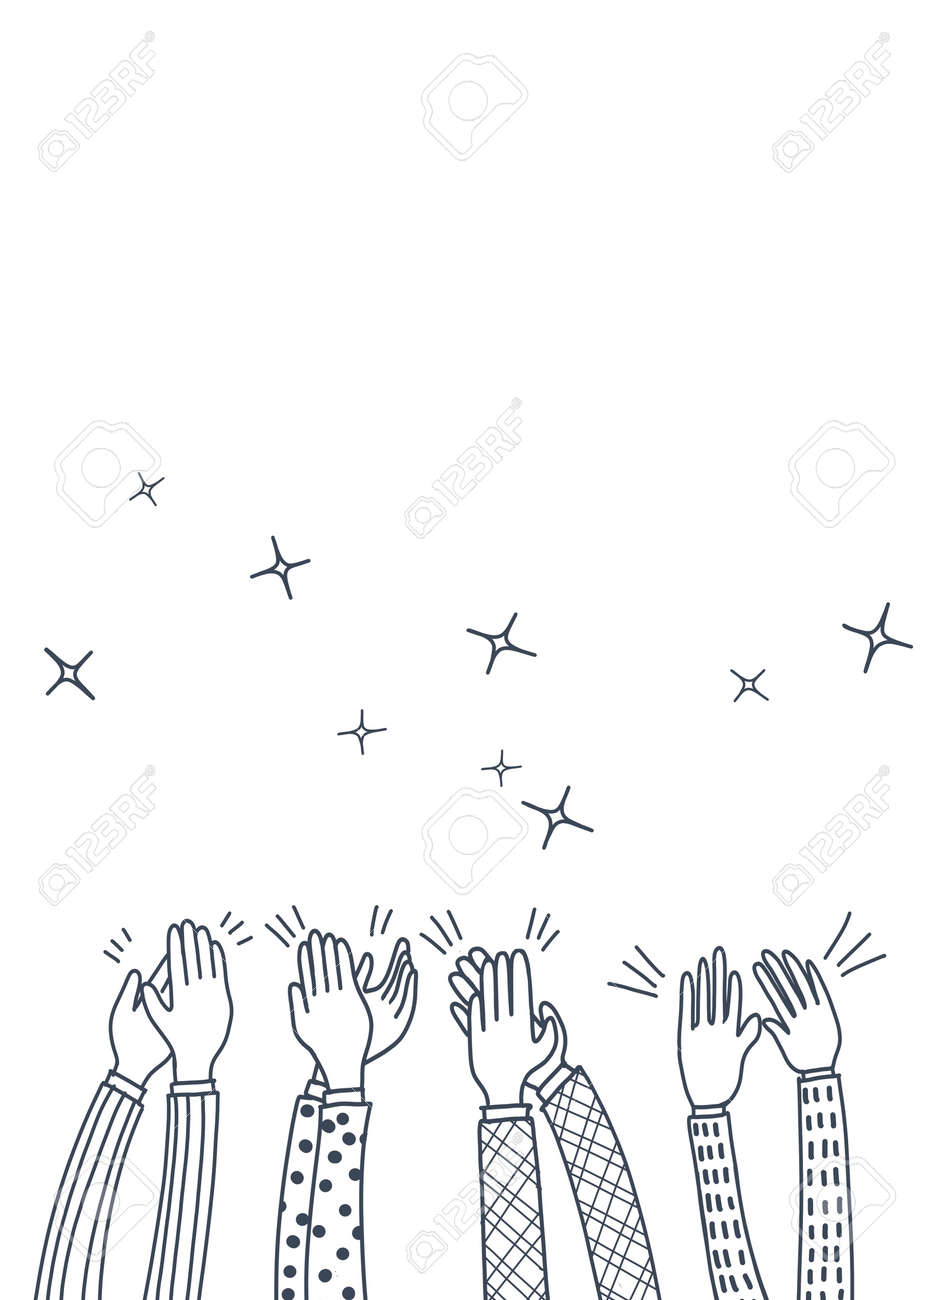 Human hands clapping ovation. doodle style ,vector illustration - 110844520